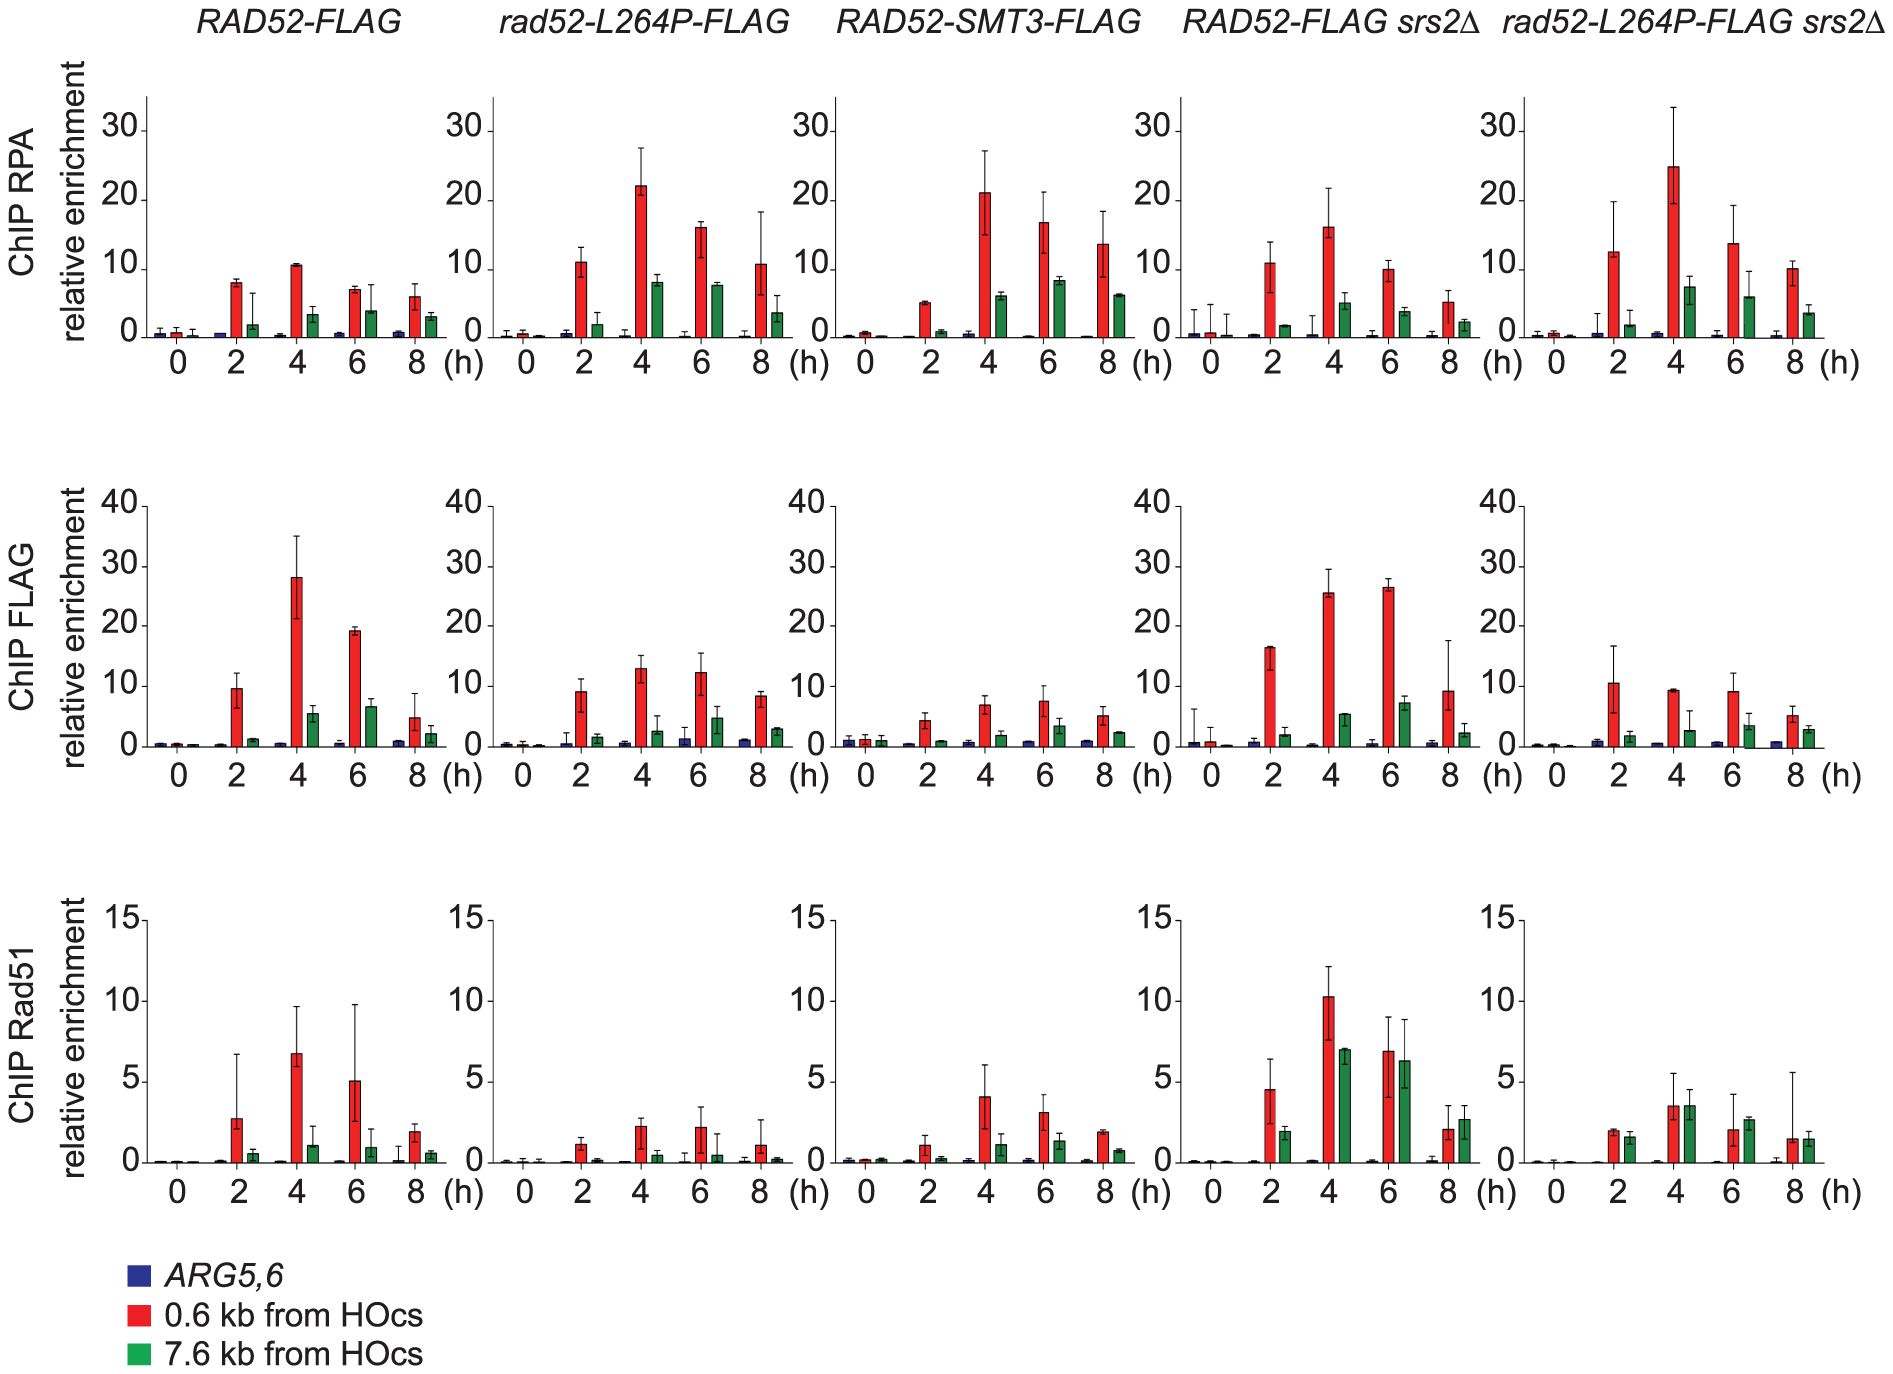 ChIP analysis of Rad51 filament formation at a DSB created by the HO endonuclease in cells that express Rad52-FLAG, Rad52-L264P-FLAG or Rad52-SUMO-FLAG.